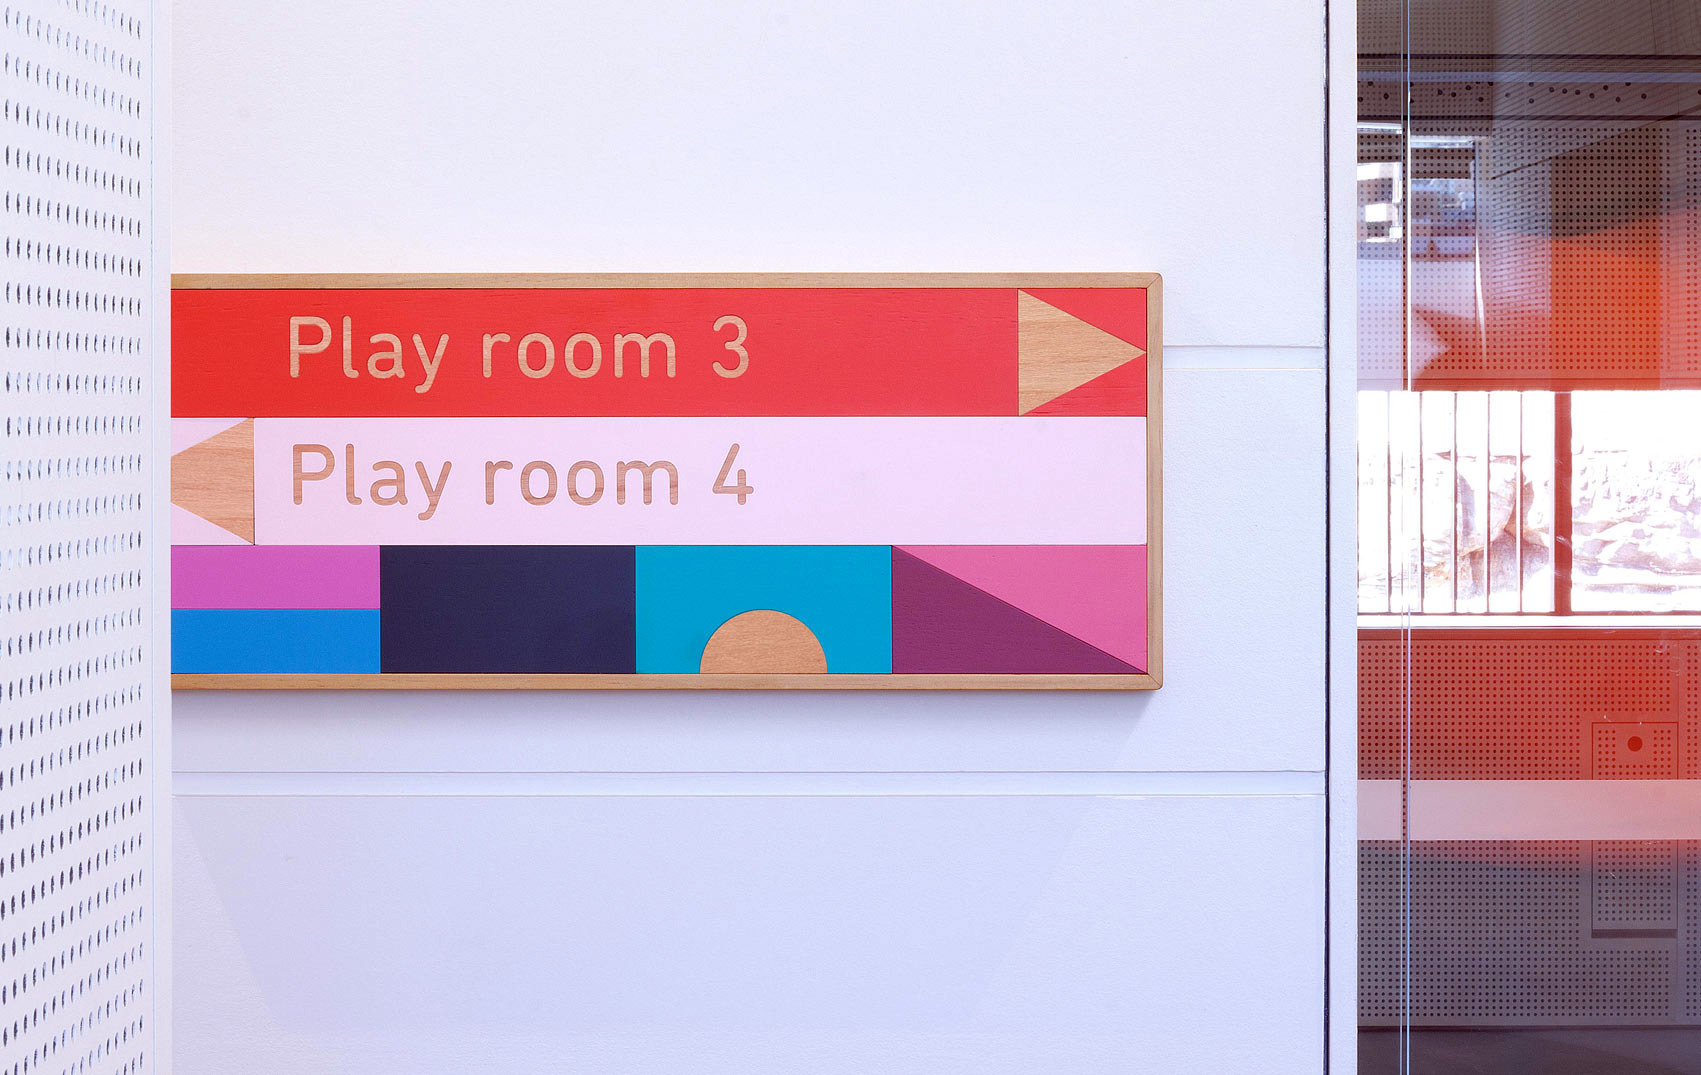 Signage System for East Sydney Early Learning Centre. Designed by Toko and ABA Architects @enviromeant